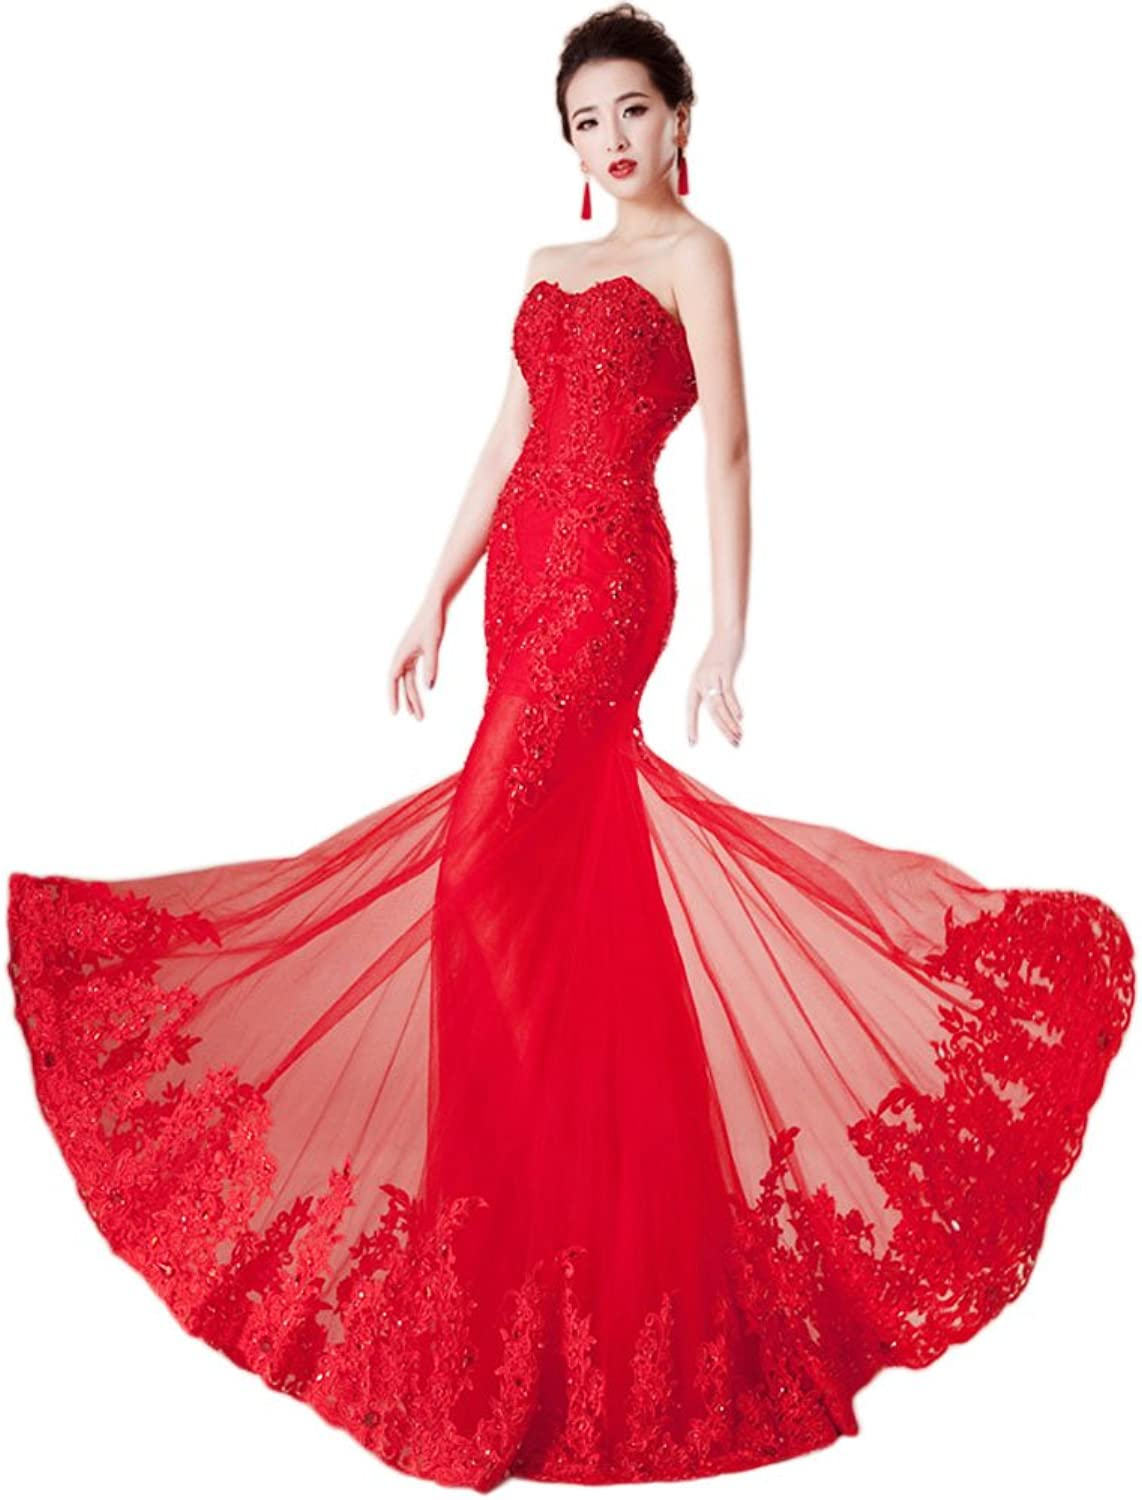 Vimans Women's Red Sweetheart Mermaid Sequined Lace Evening Party Dresses